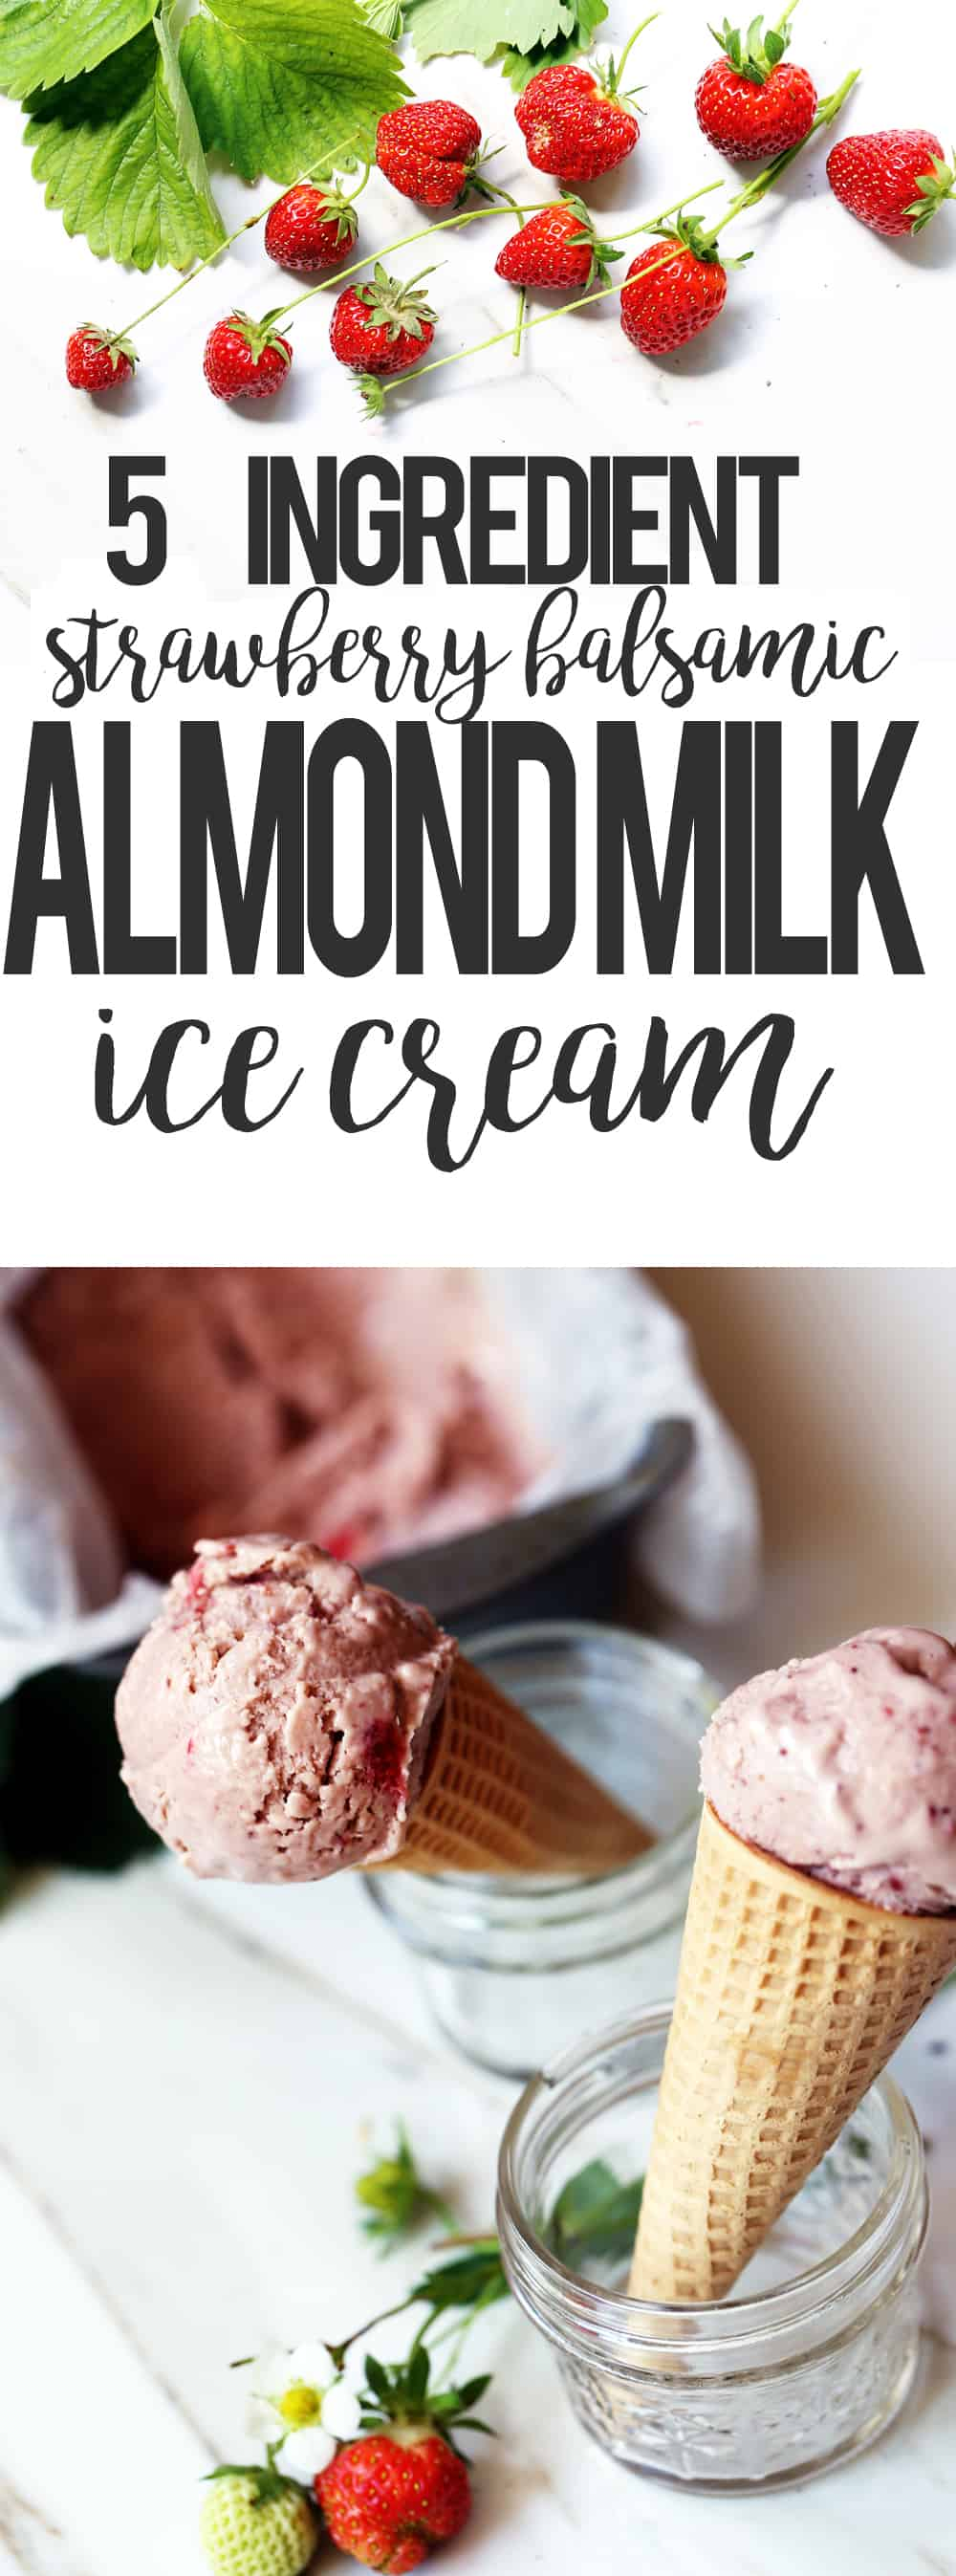 Five ingredient Strawberry Balsamic Almond Milk Ice Cream